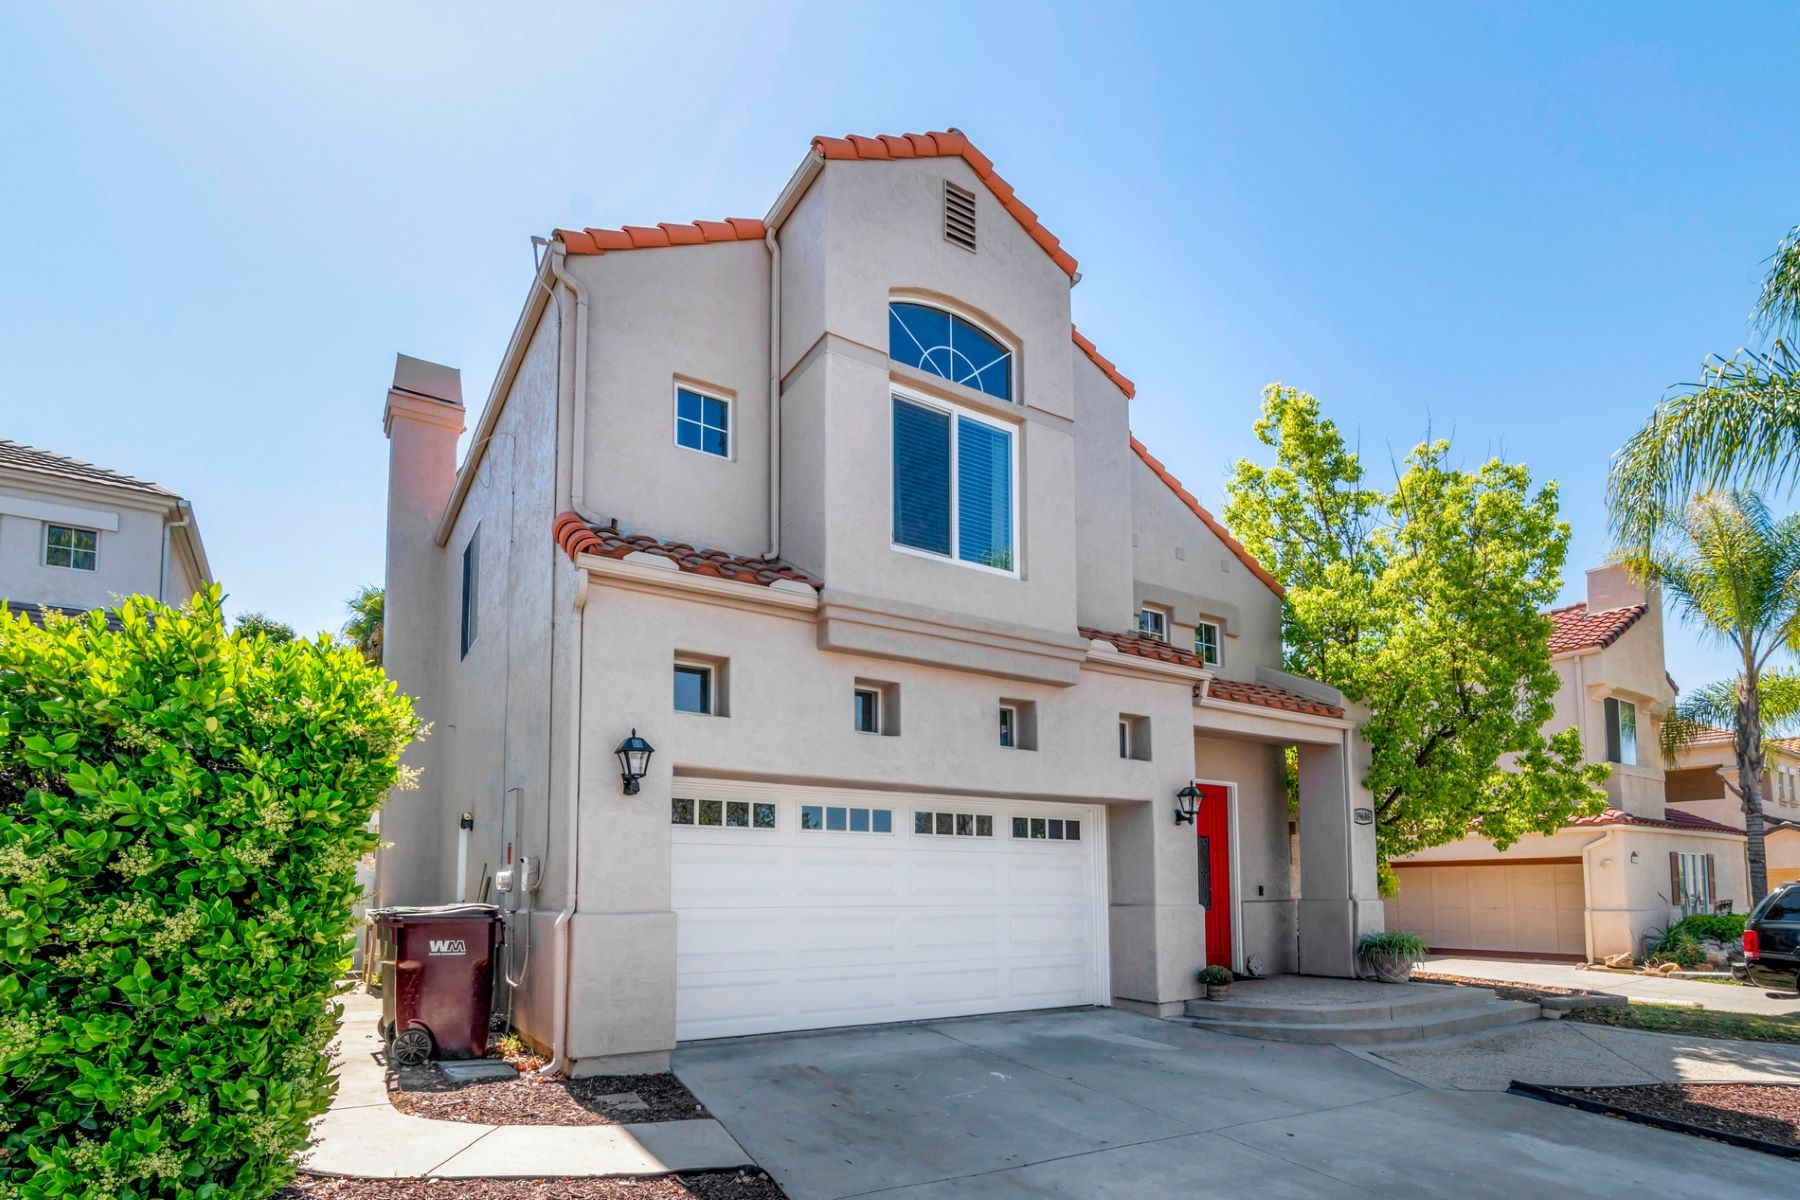 Single Family Homes for Active at Murrieta Beauty! 39686 Via Las Palmas Murrieta, California 92563 United States